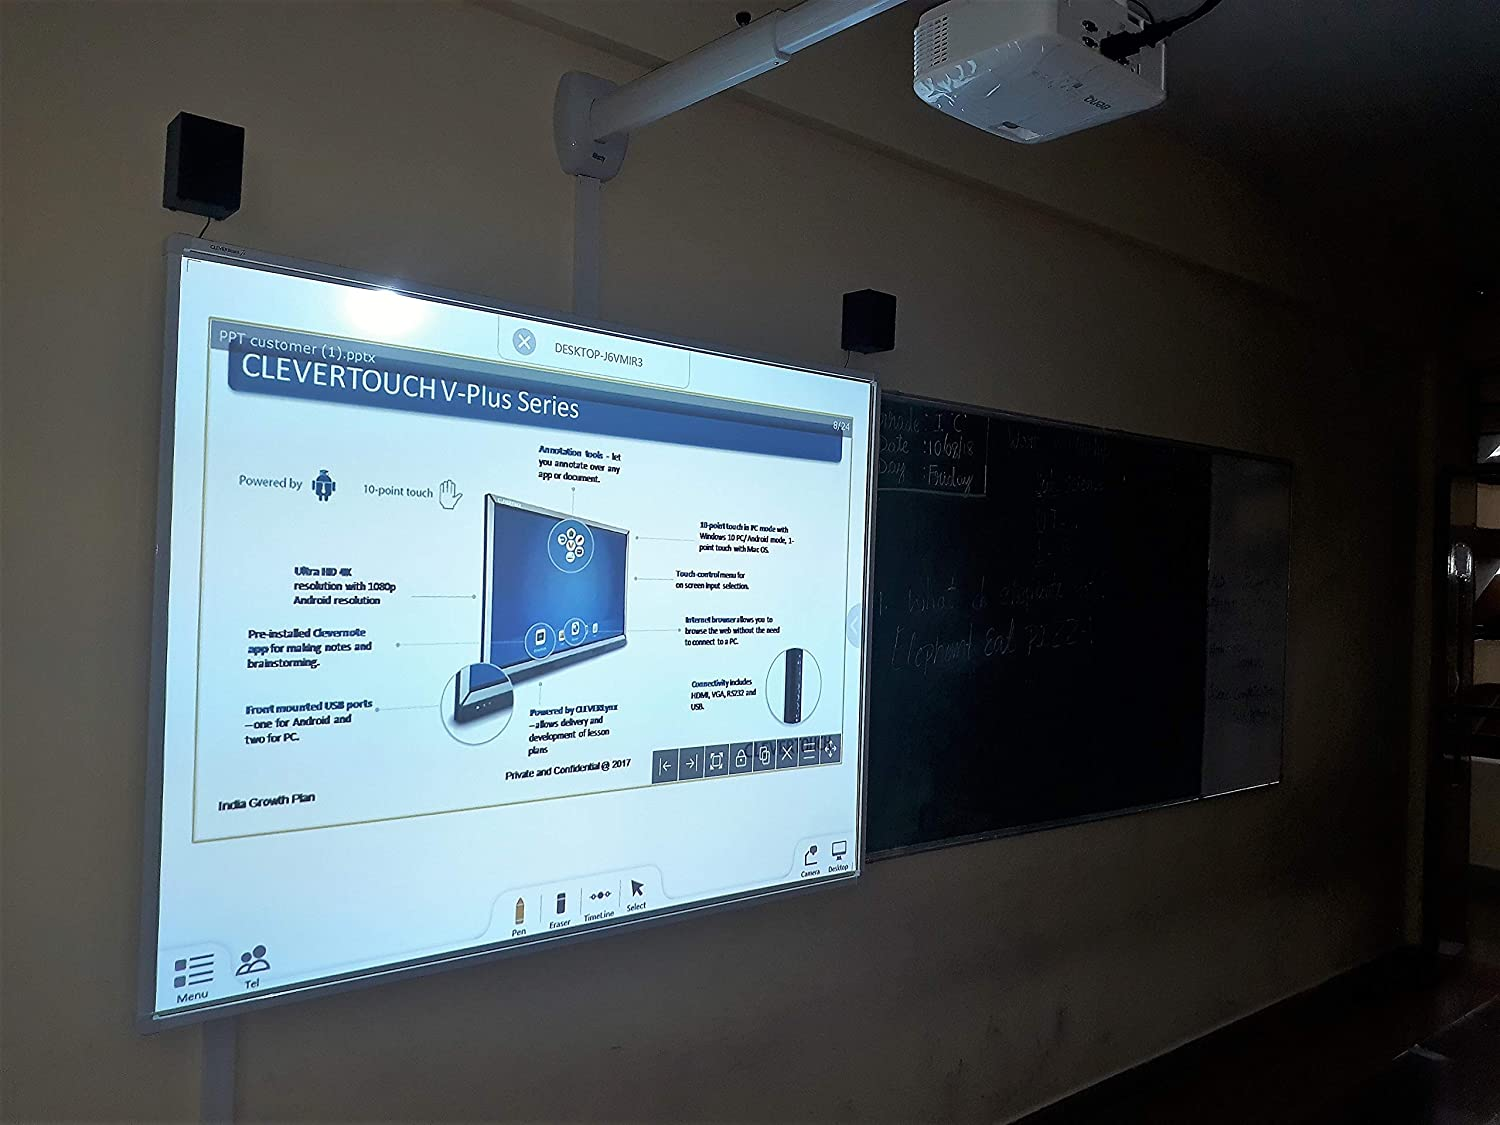 CLEVERTOUCH Interactive Whiteboard/Smart Board with S L W